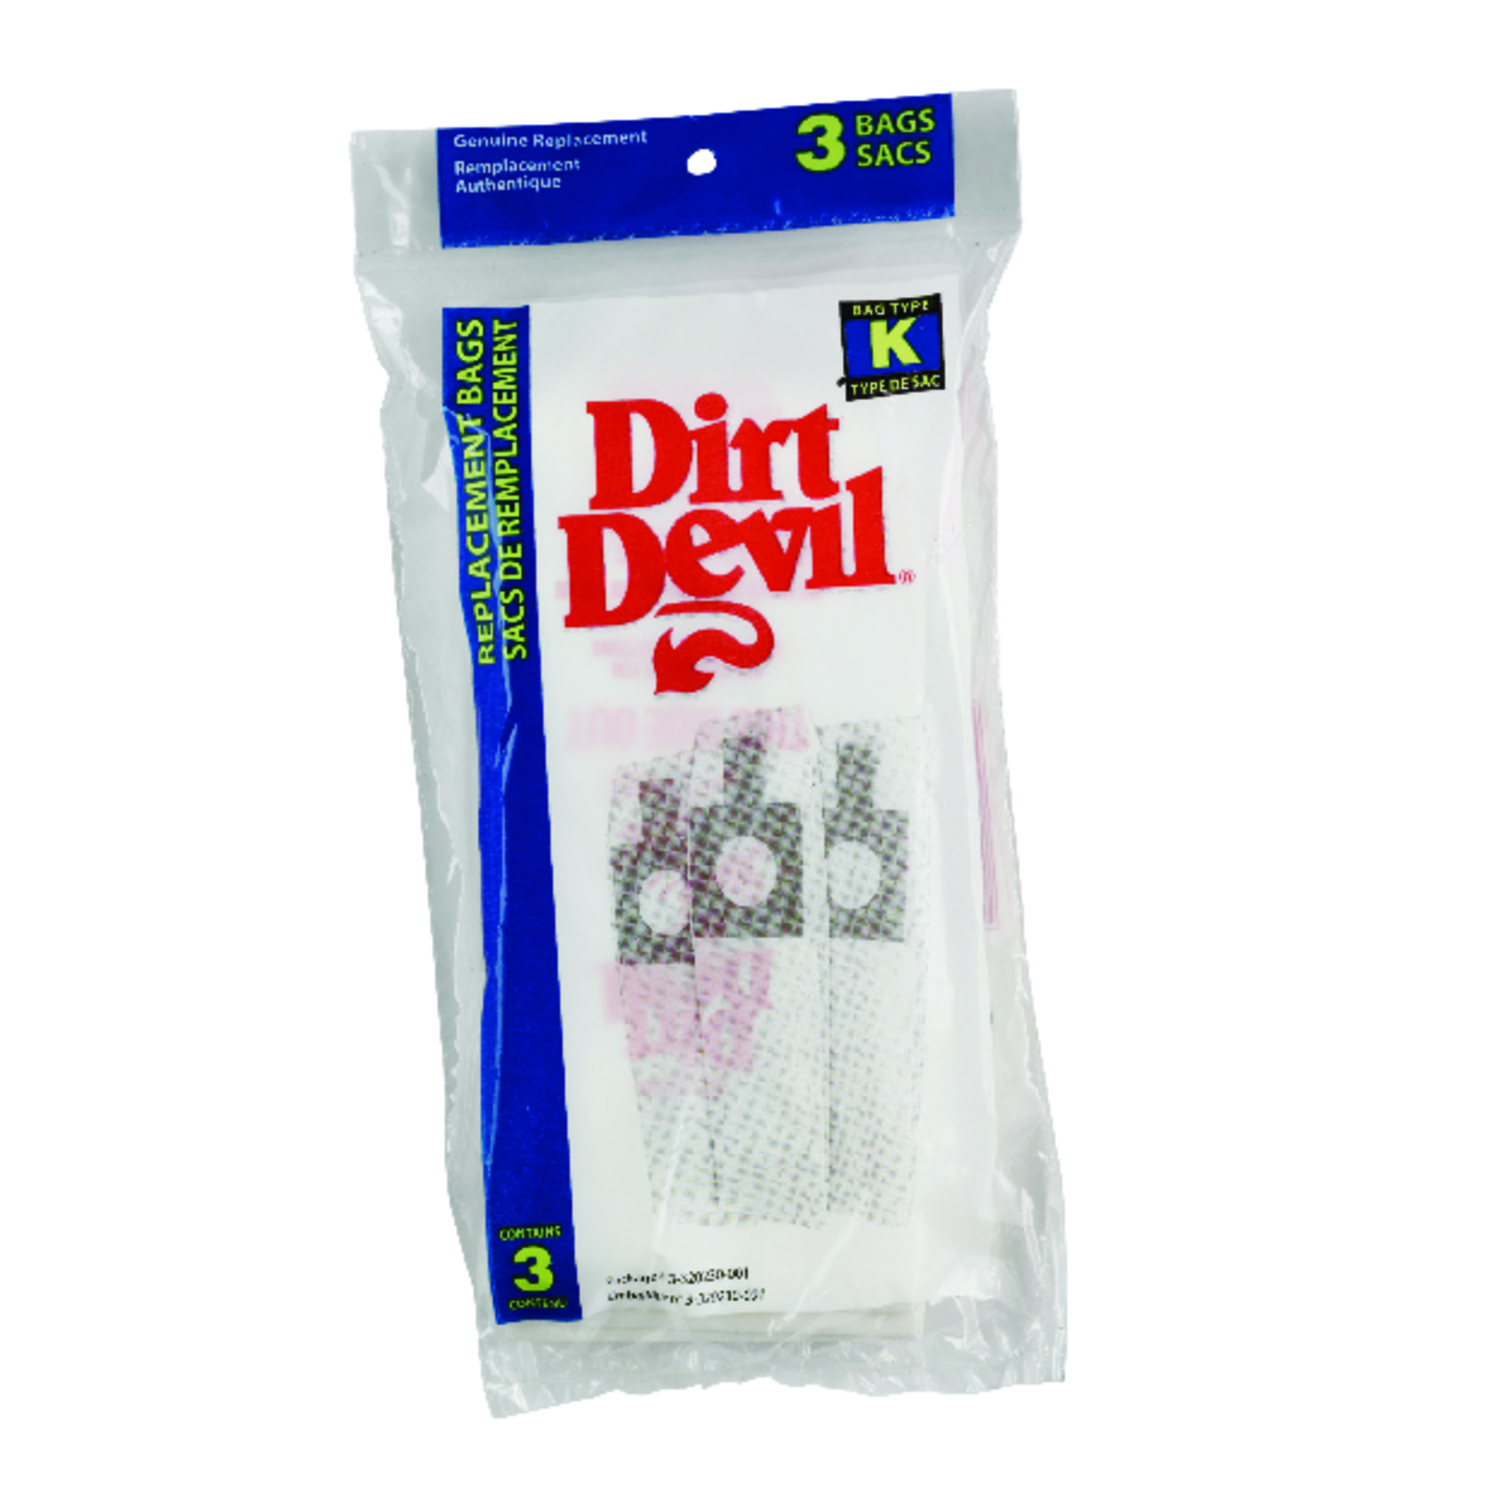 Dirt Devil Royal Vacuum Bag  Type K Fits the Dirt Devil Royal Stick Peggable 3 / Pack Stick Vac